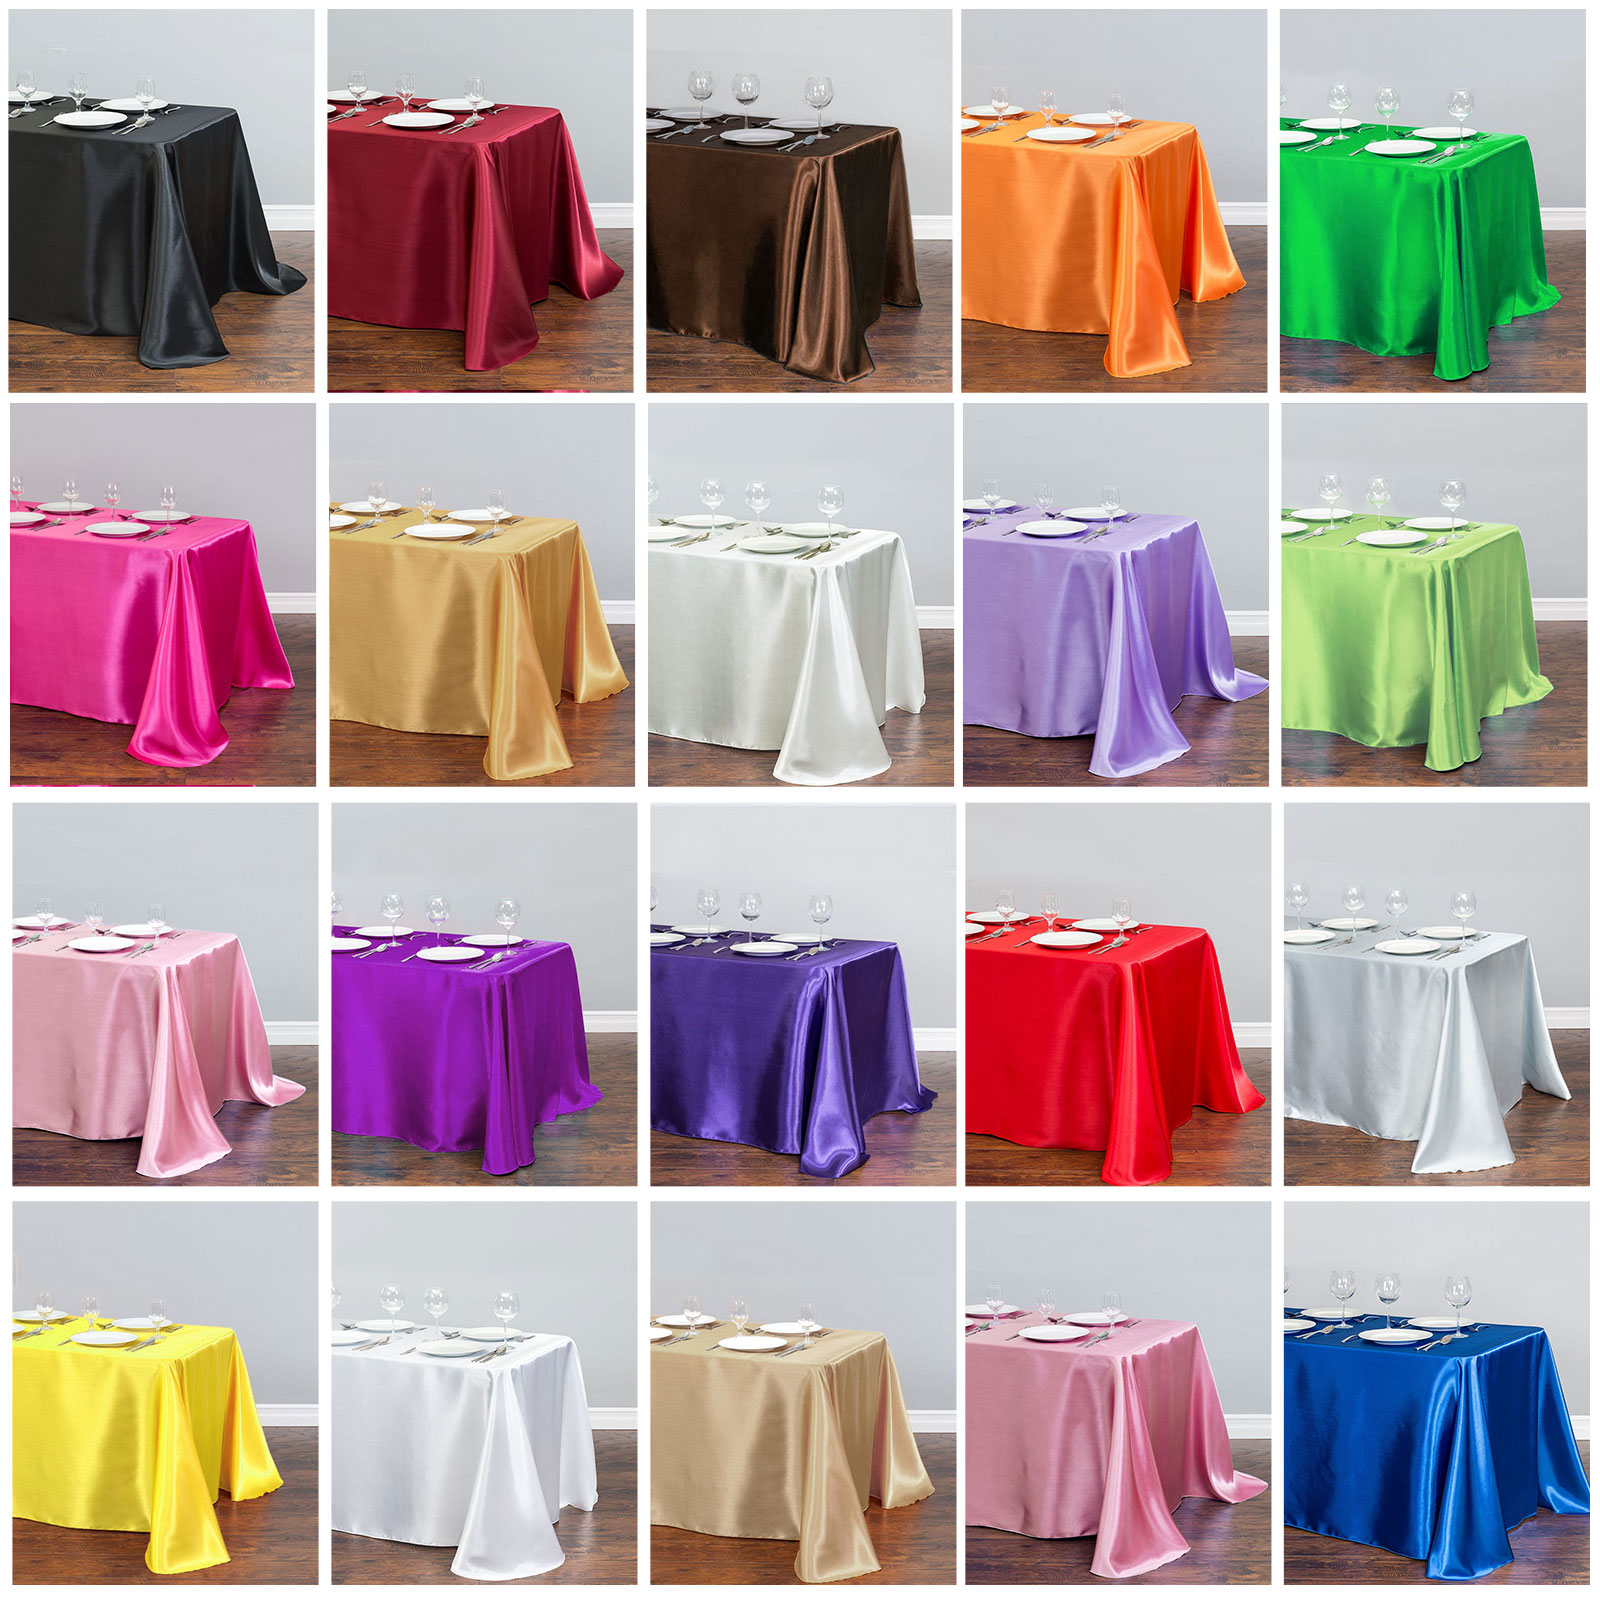 1pcs Wedding White Satin Table Cloth Rectangle Table Cover Table Overlay For Wedding Birthday Party Decors Christmas Tablecloth